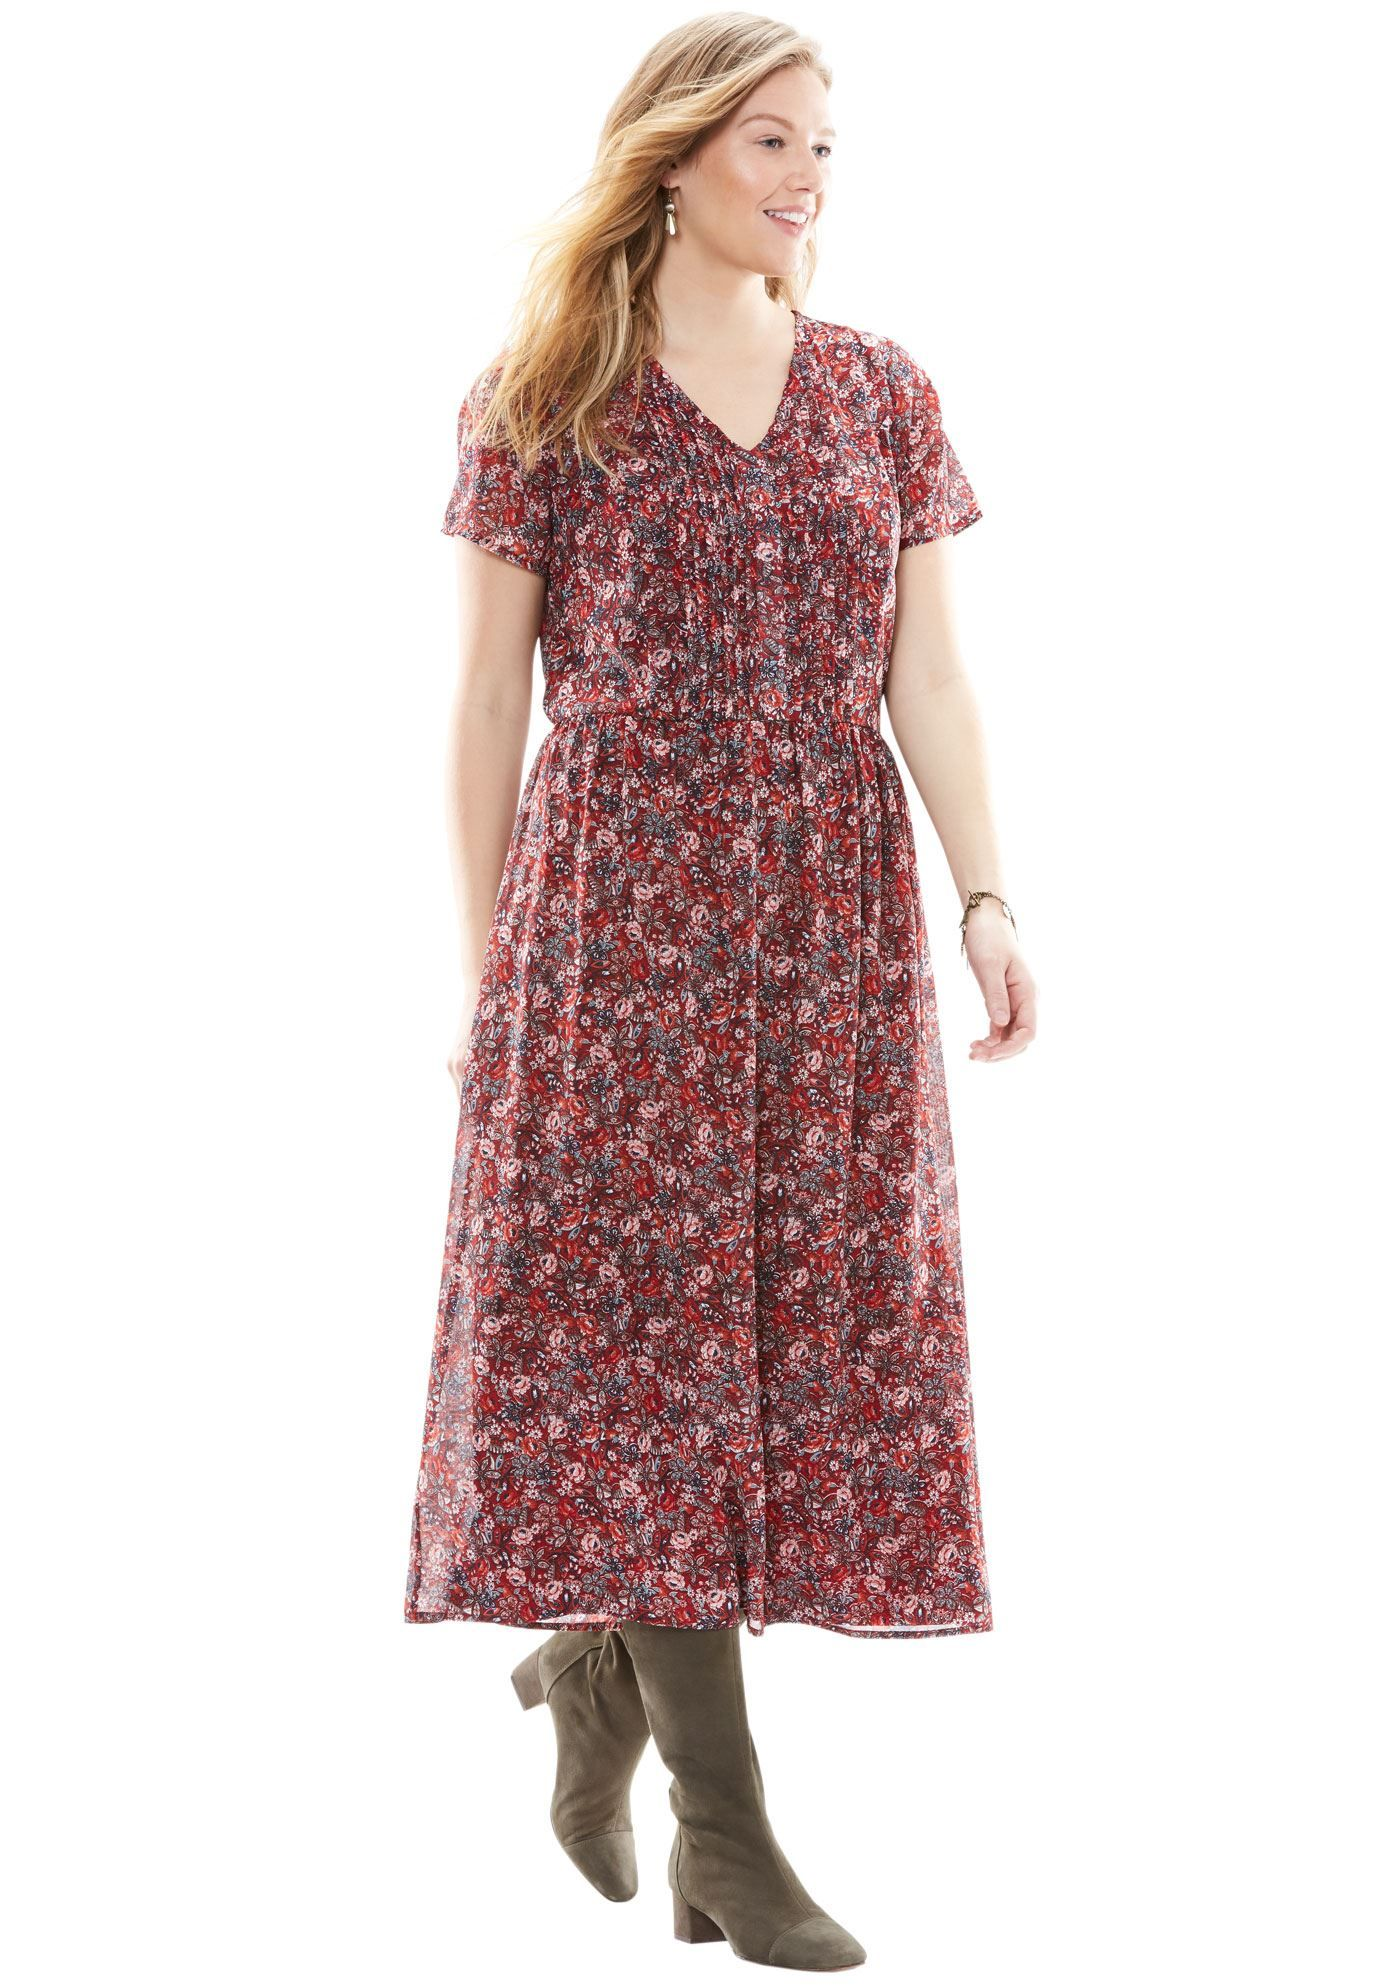 Long pintuck dress - Women\'s Plus Size Clothing | Products ...